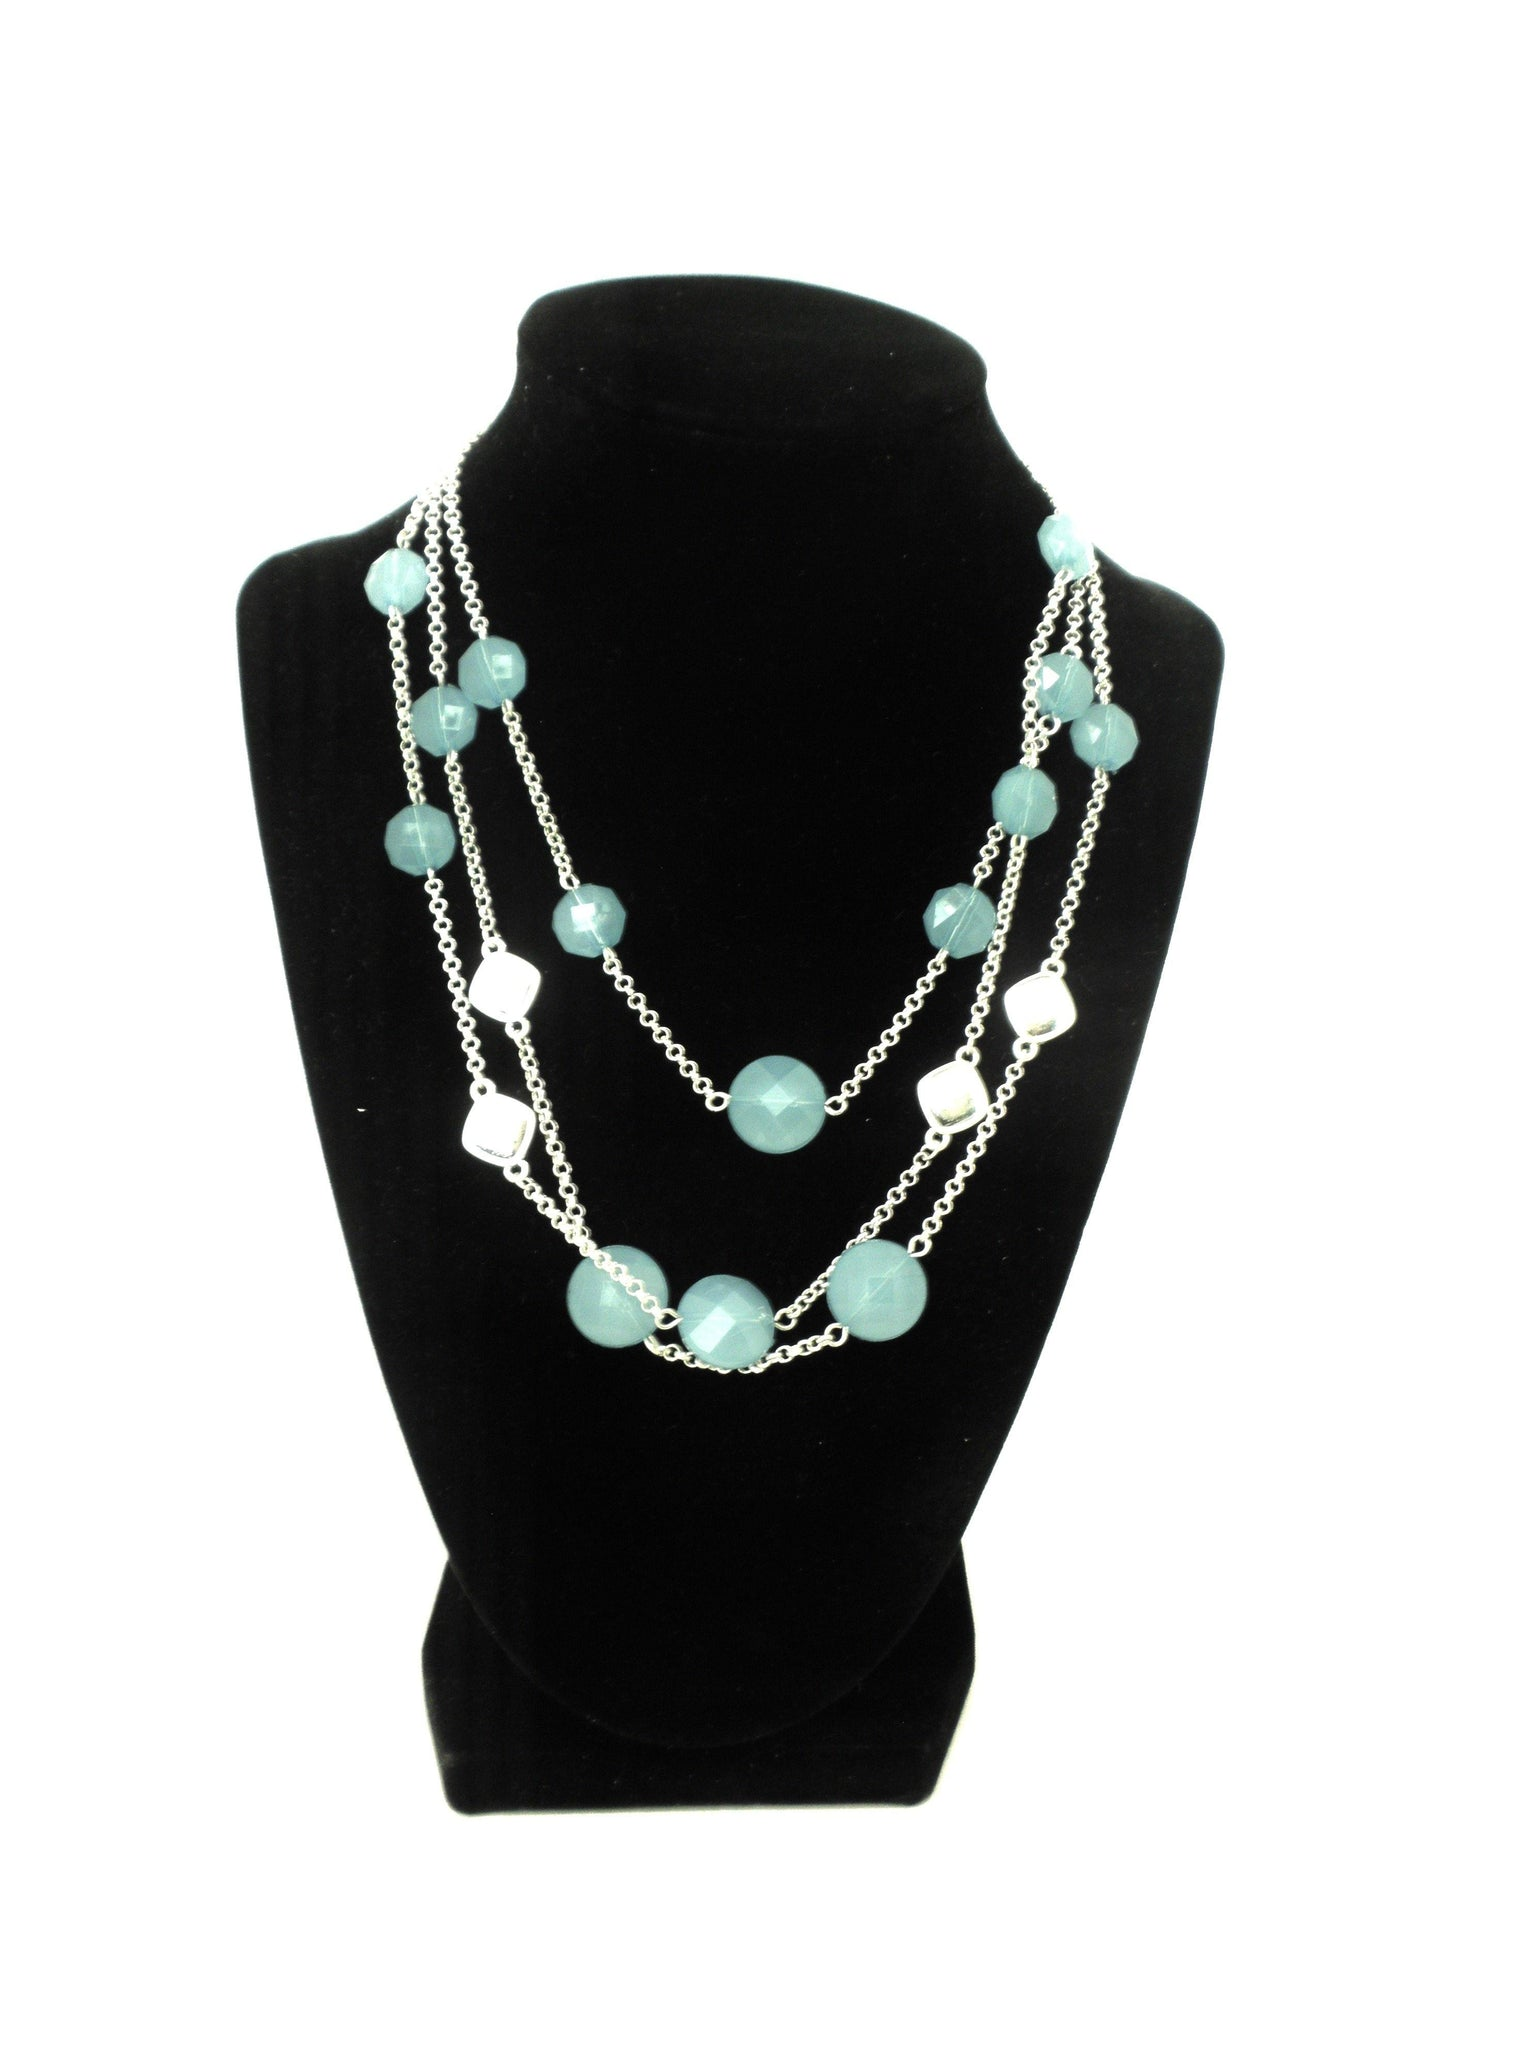 Necklace with Light Blue and Silver Gems